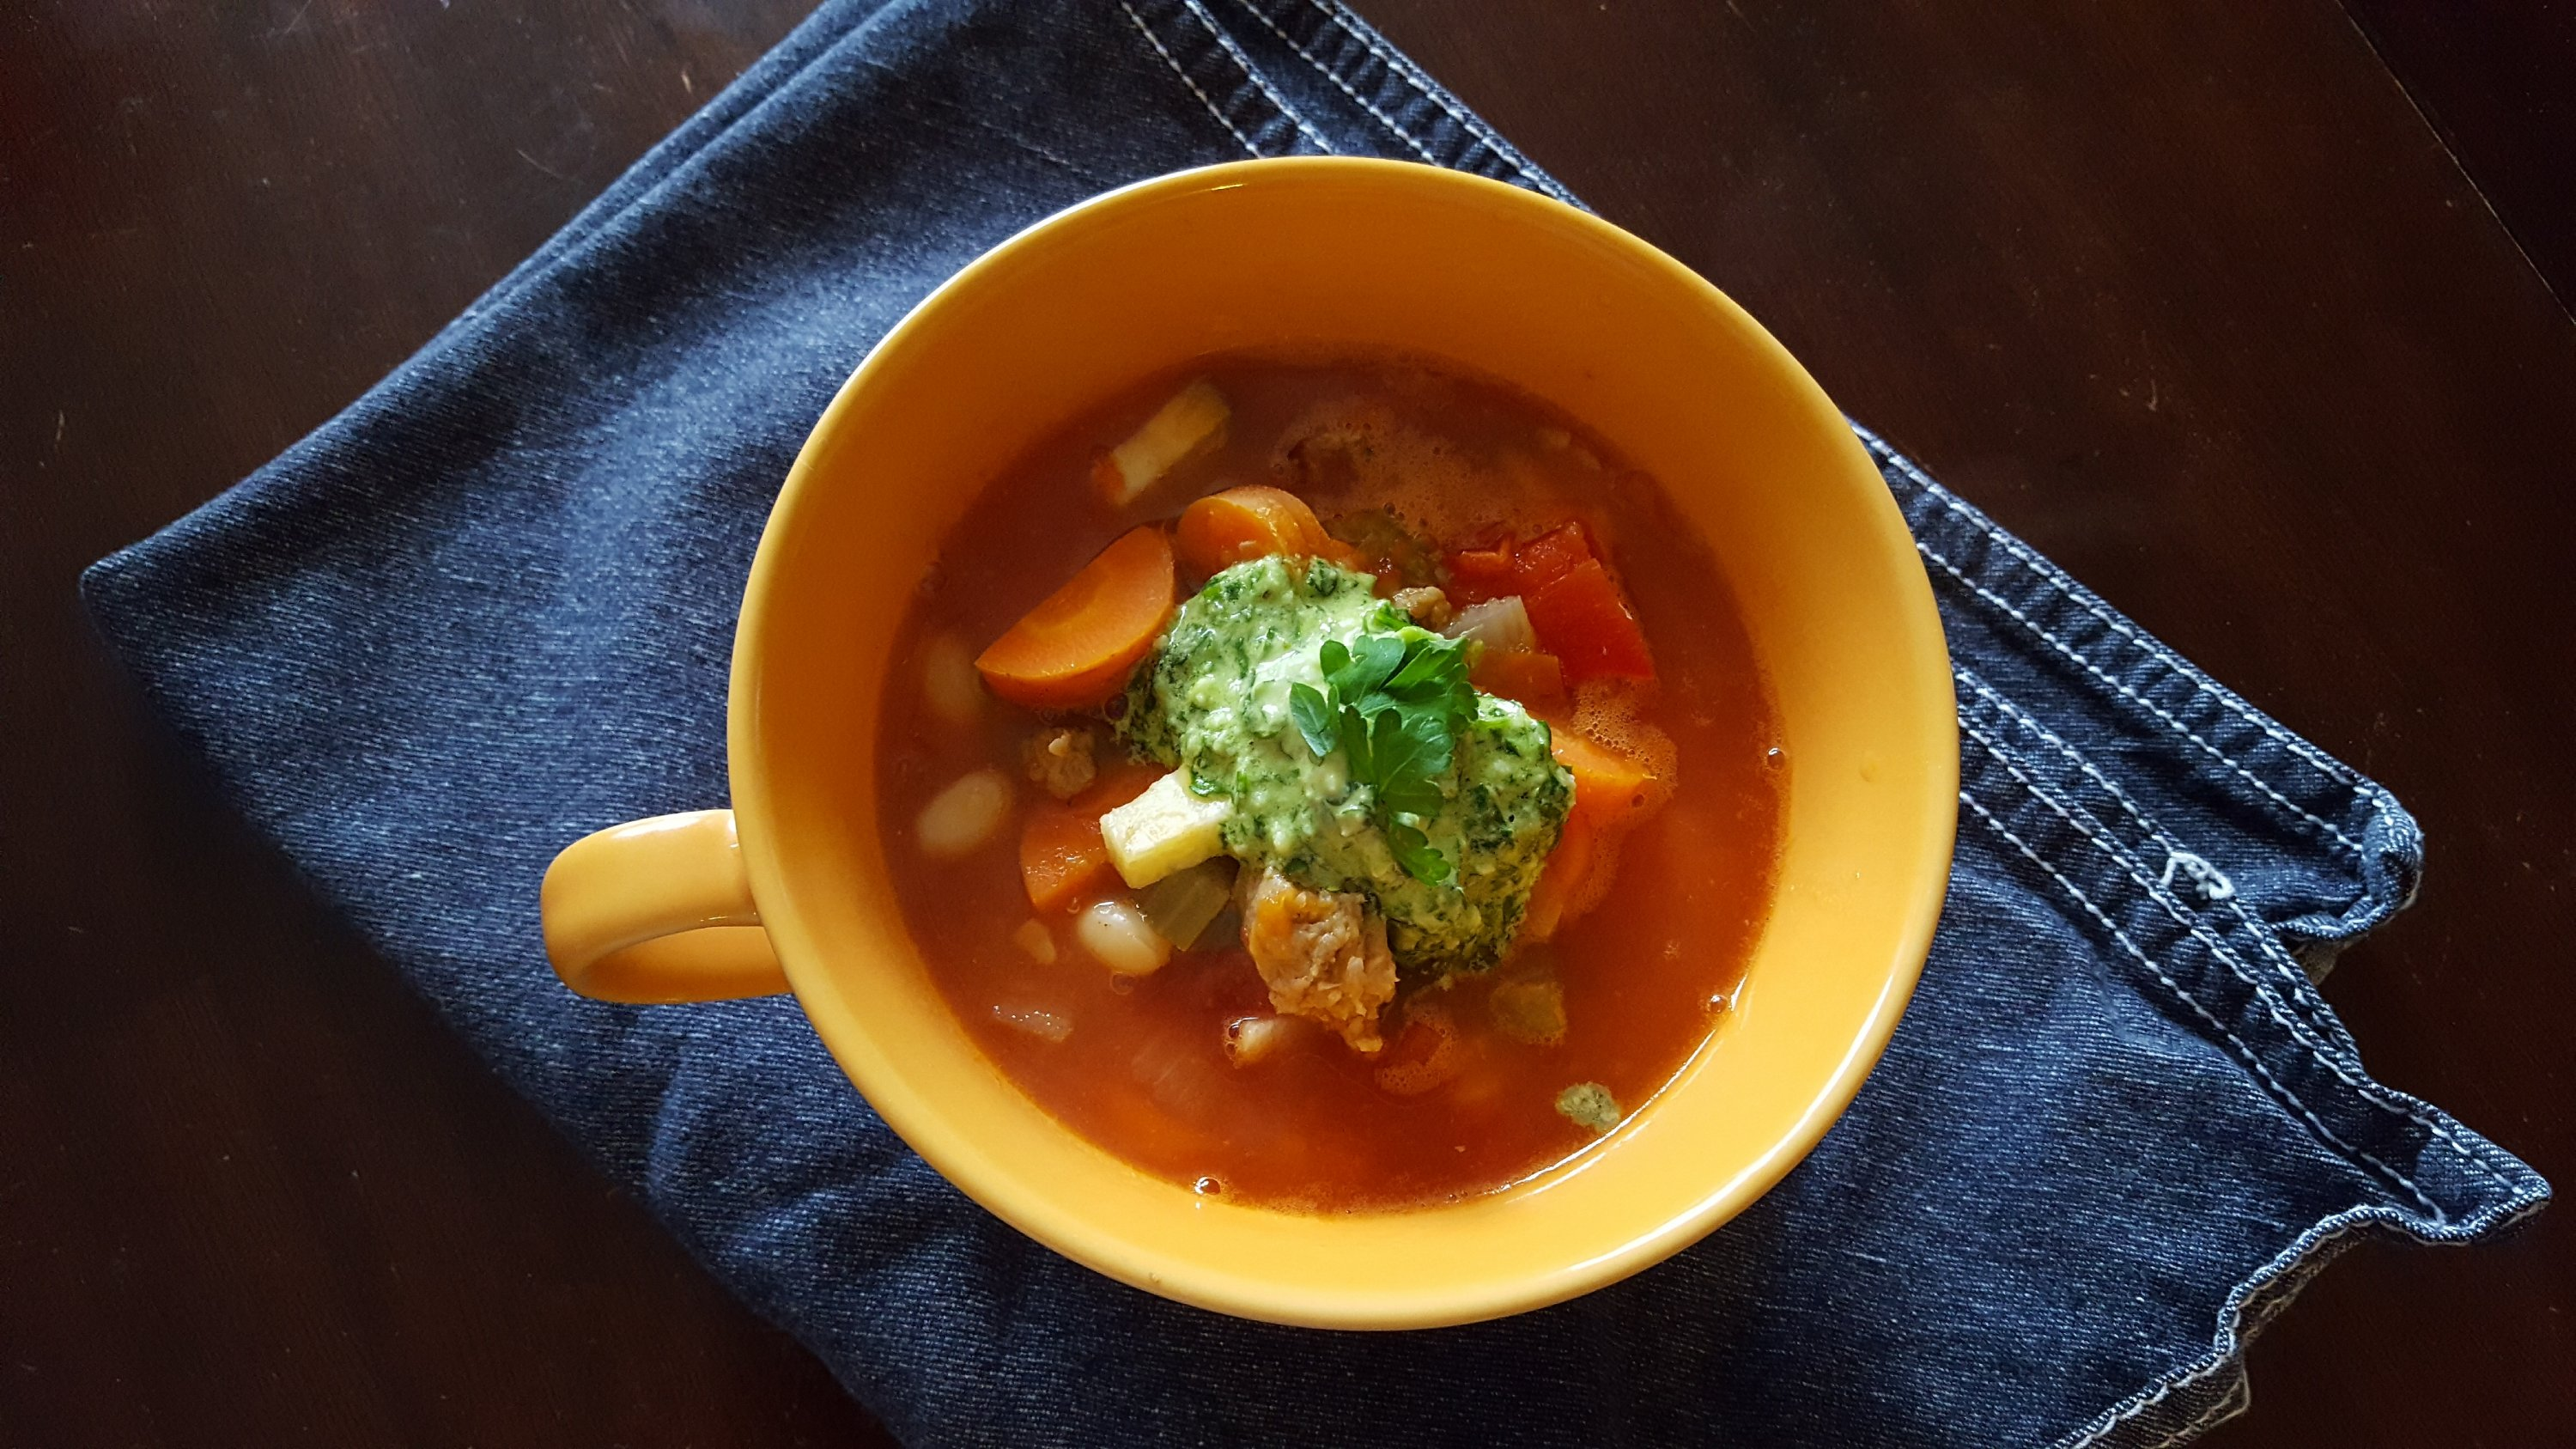 springtime vegetable soup, carrots, white beans, parsley and Parmesan cheese puree on top